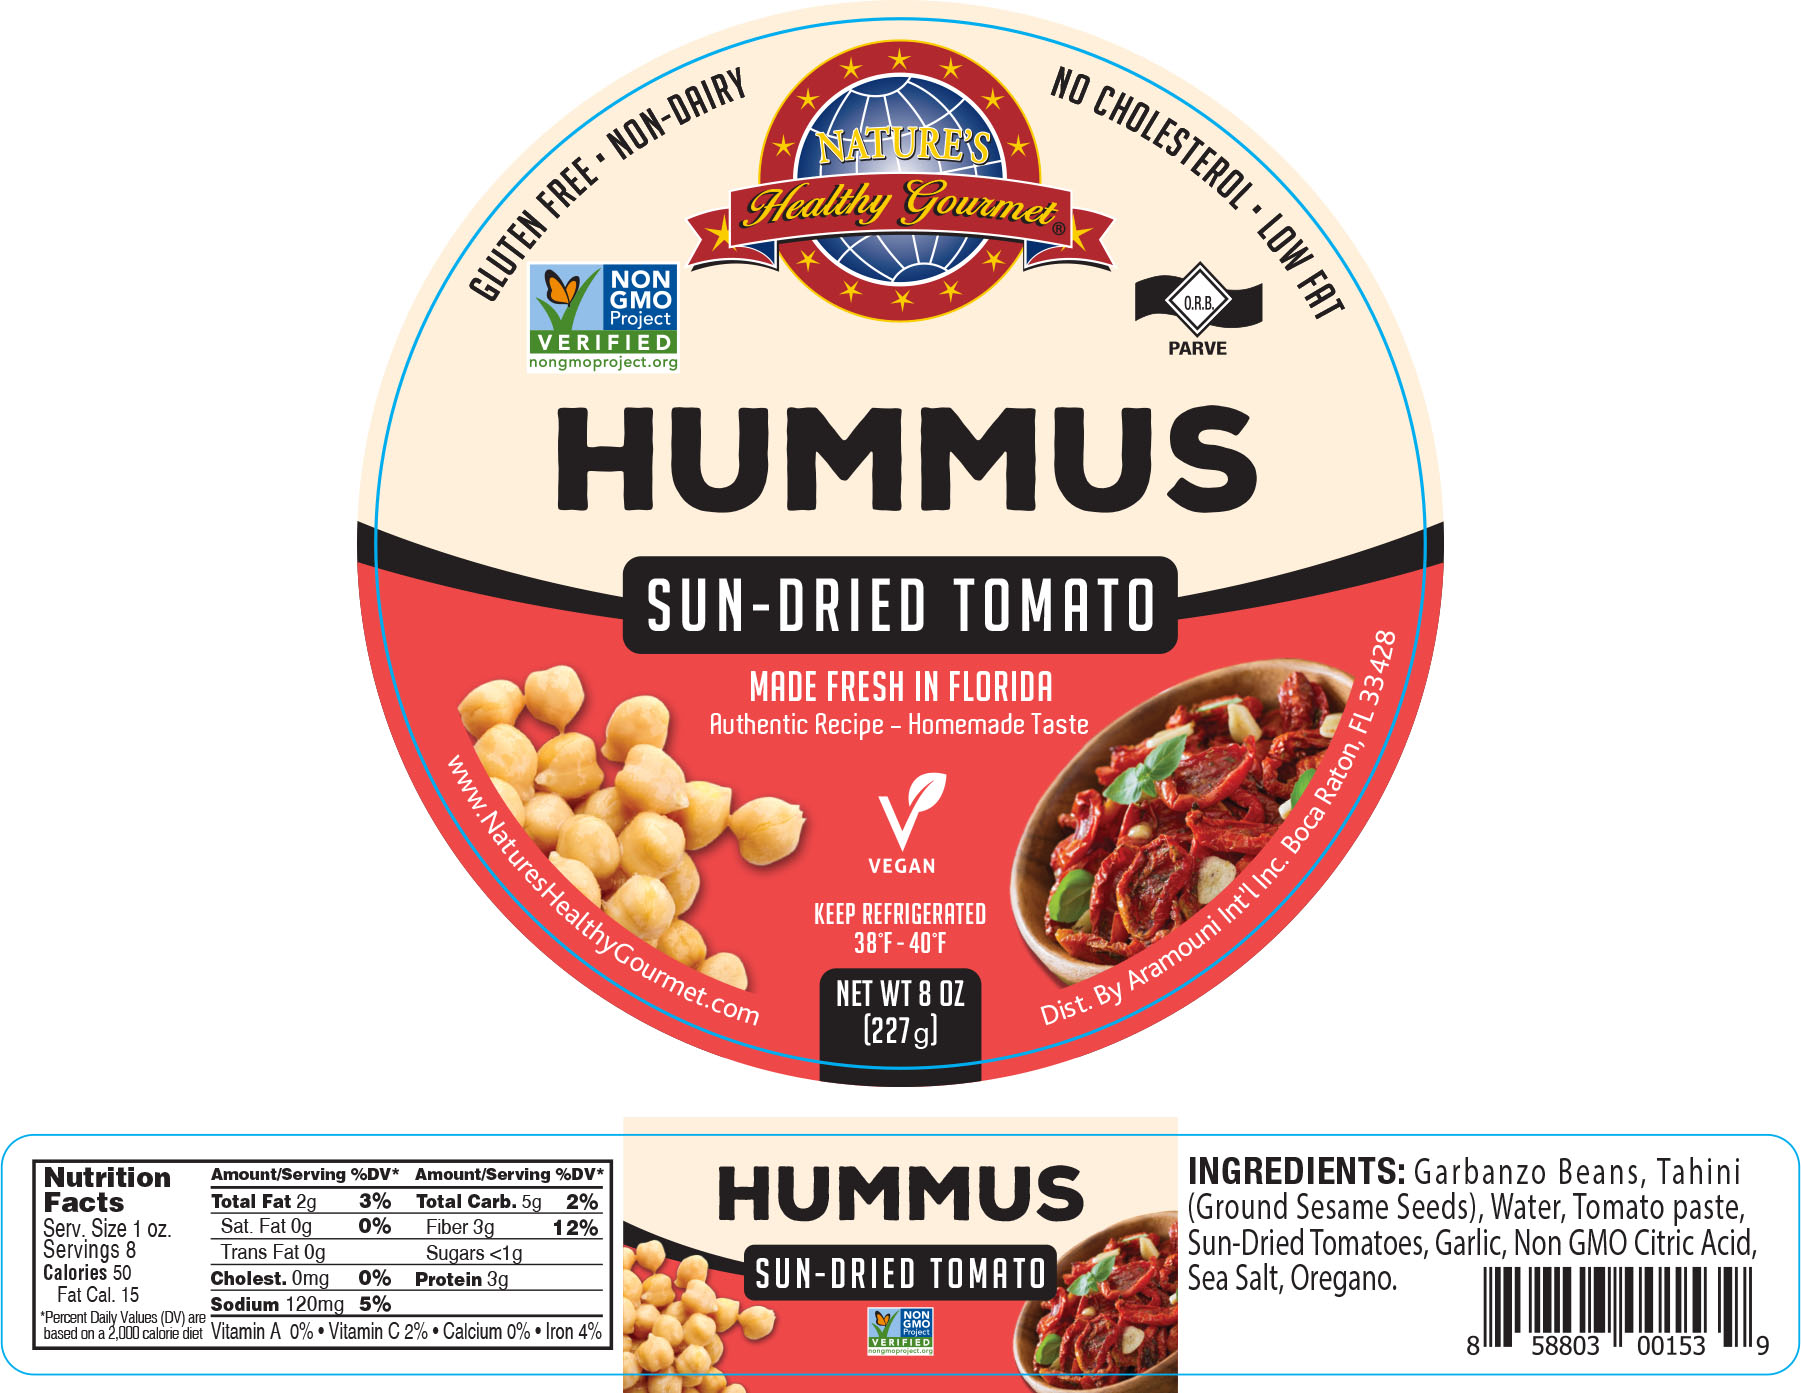 Nature's Sun-Dried Tomato Hummus